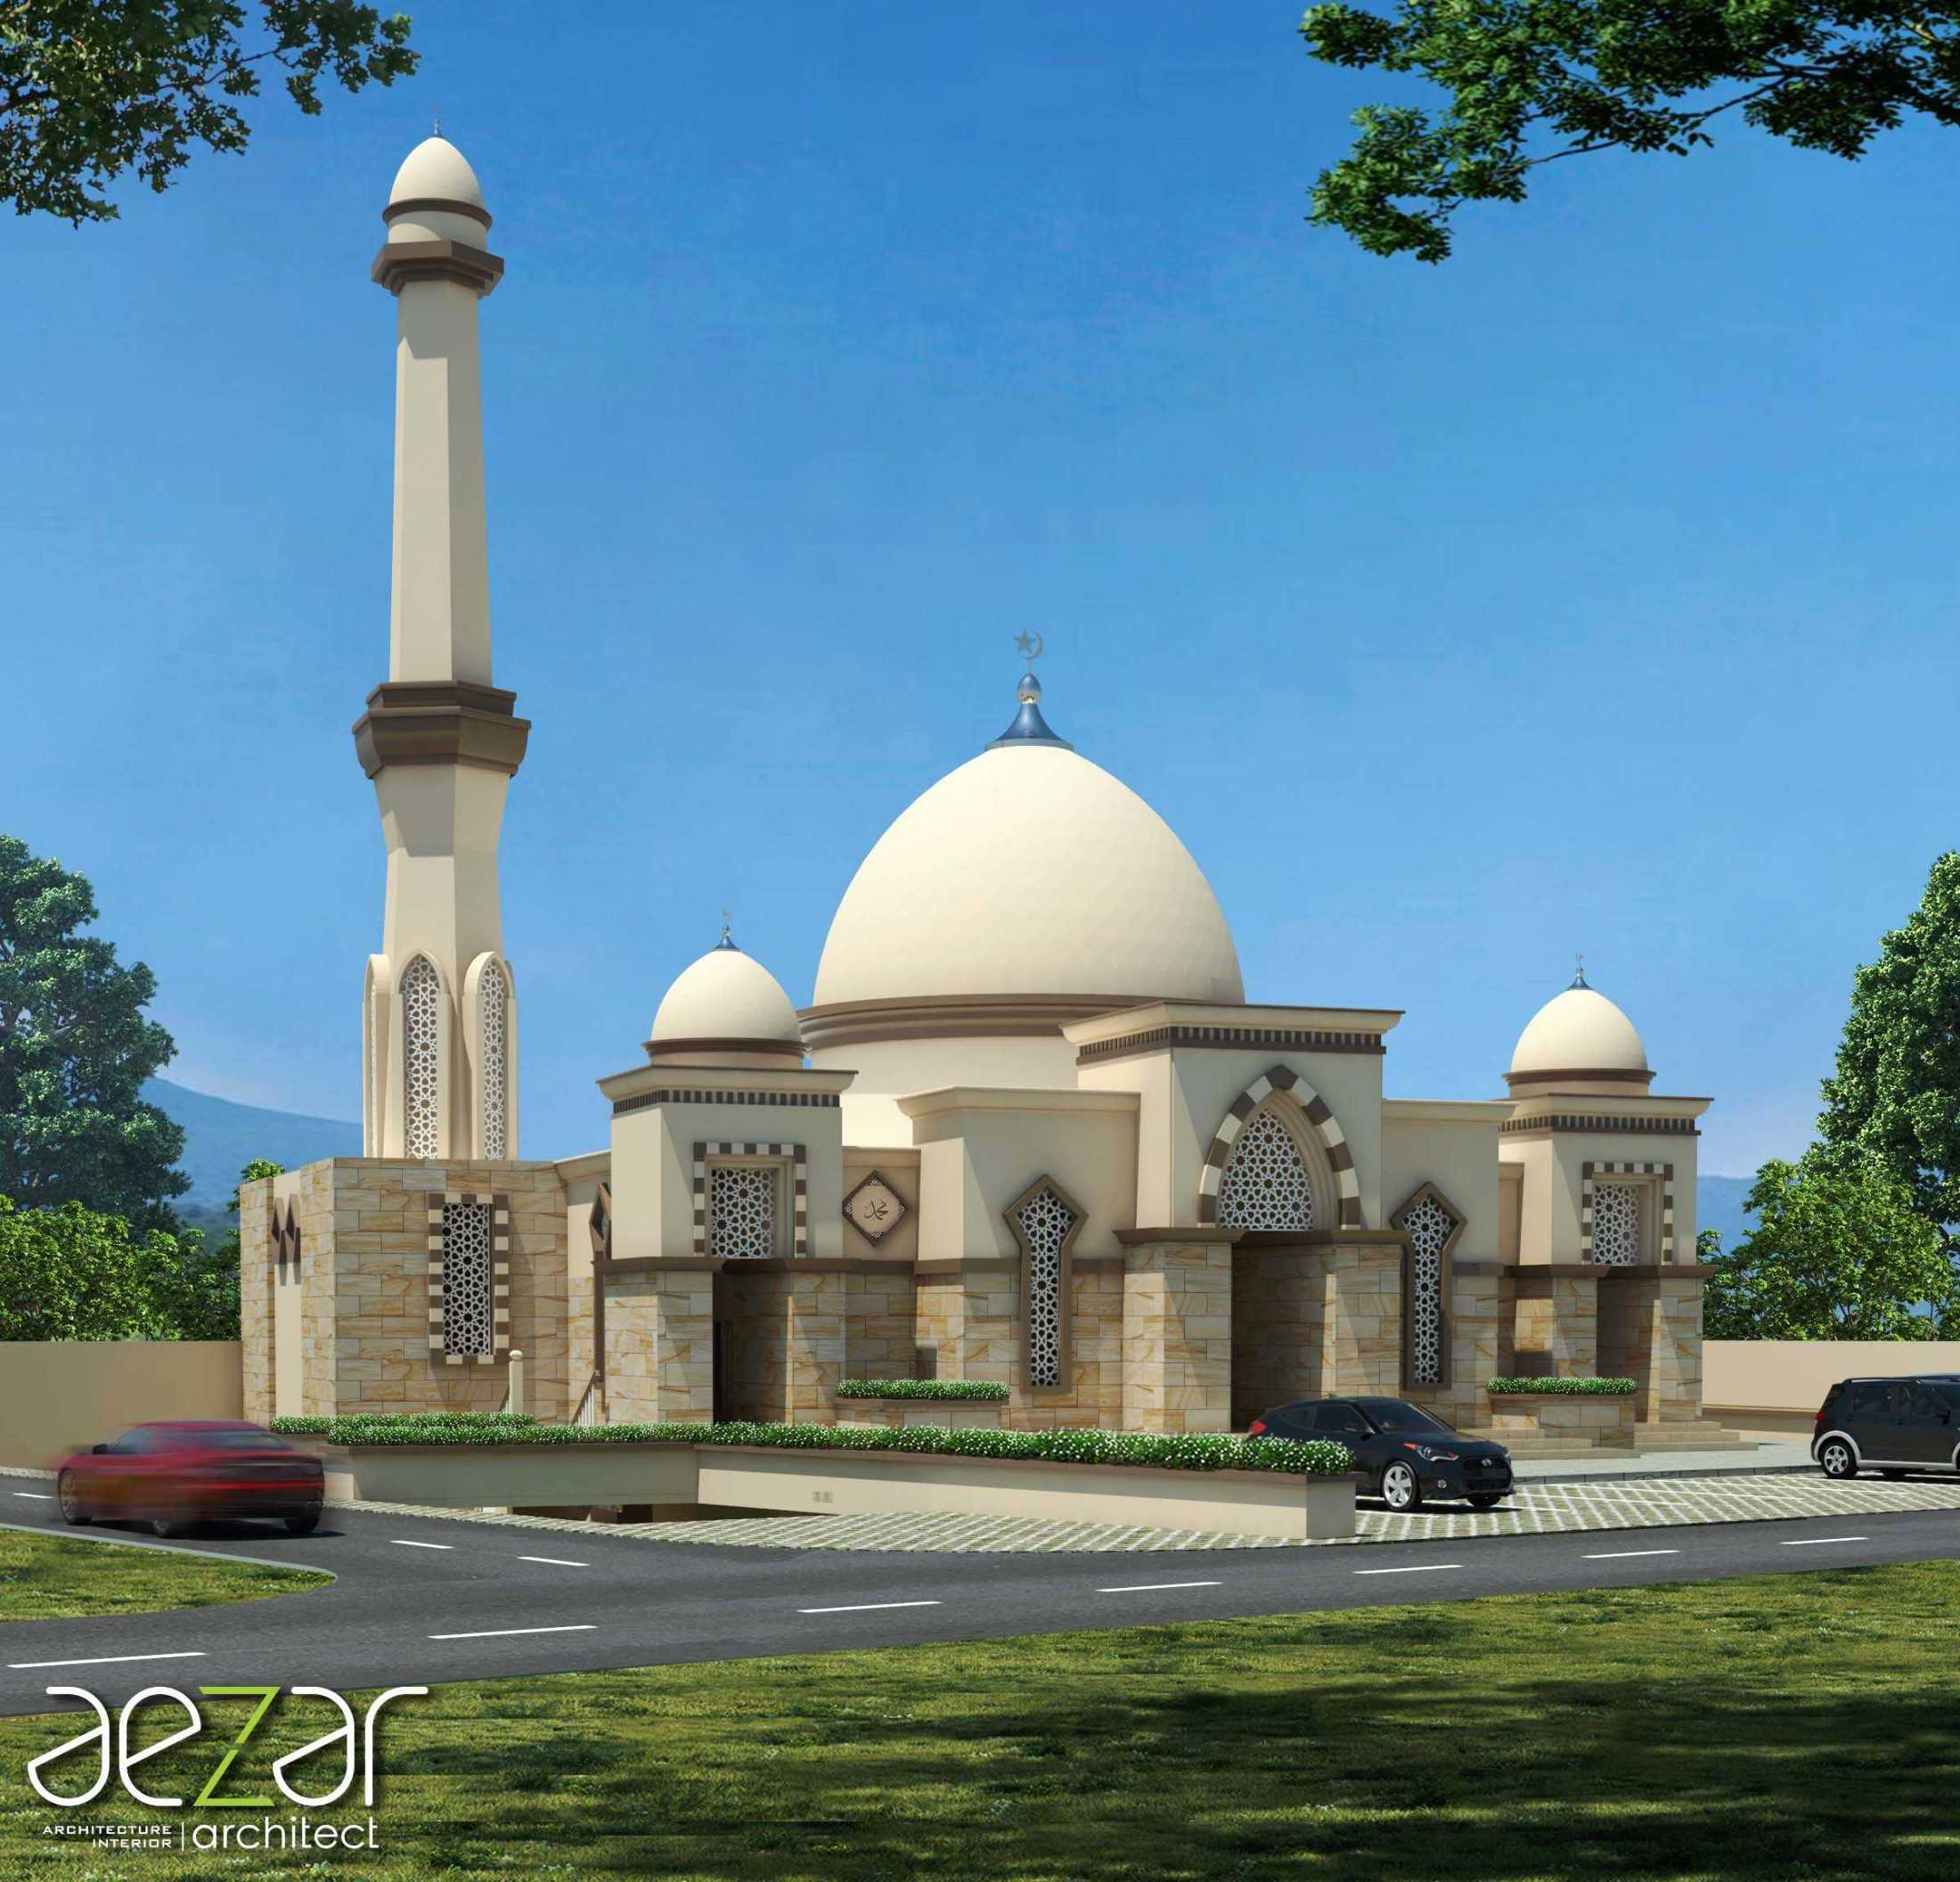 Aezar Architect di Sragen